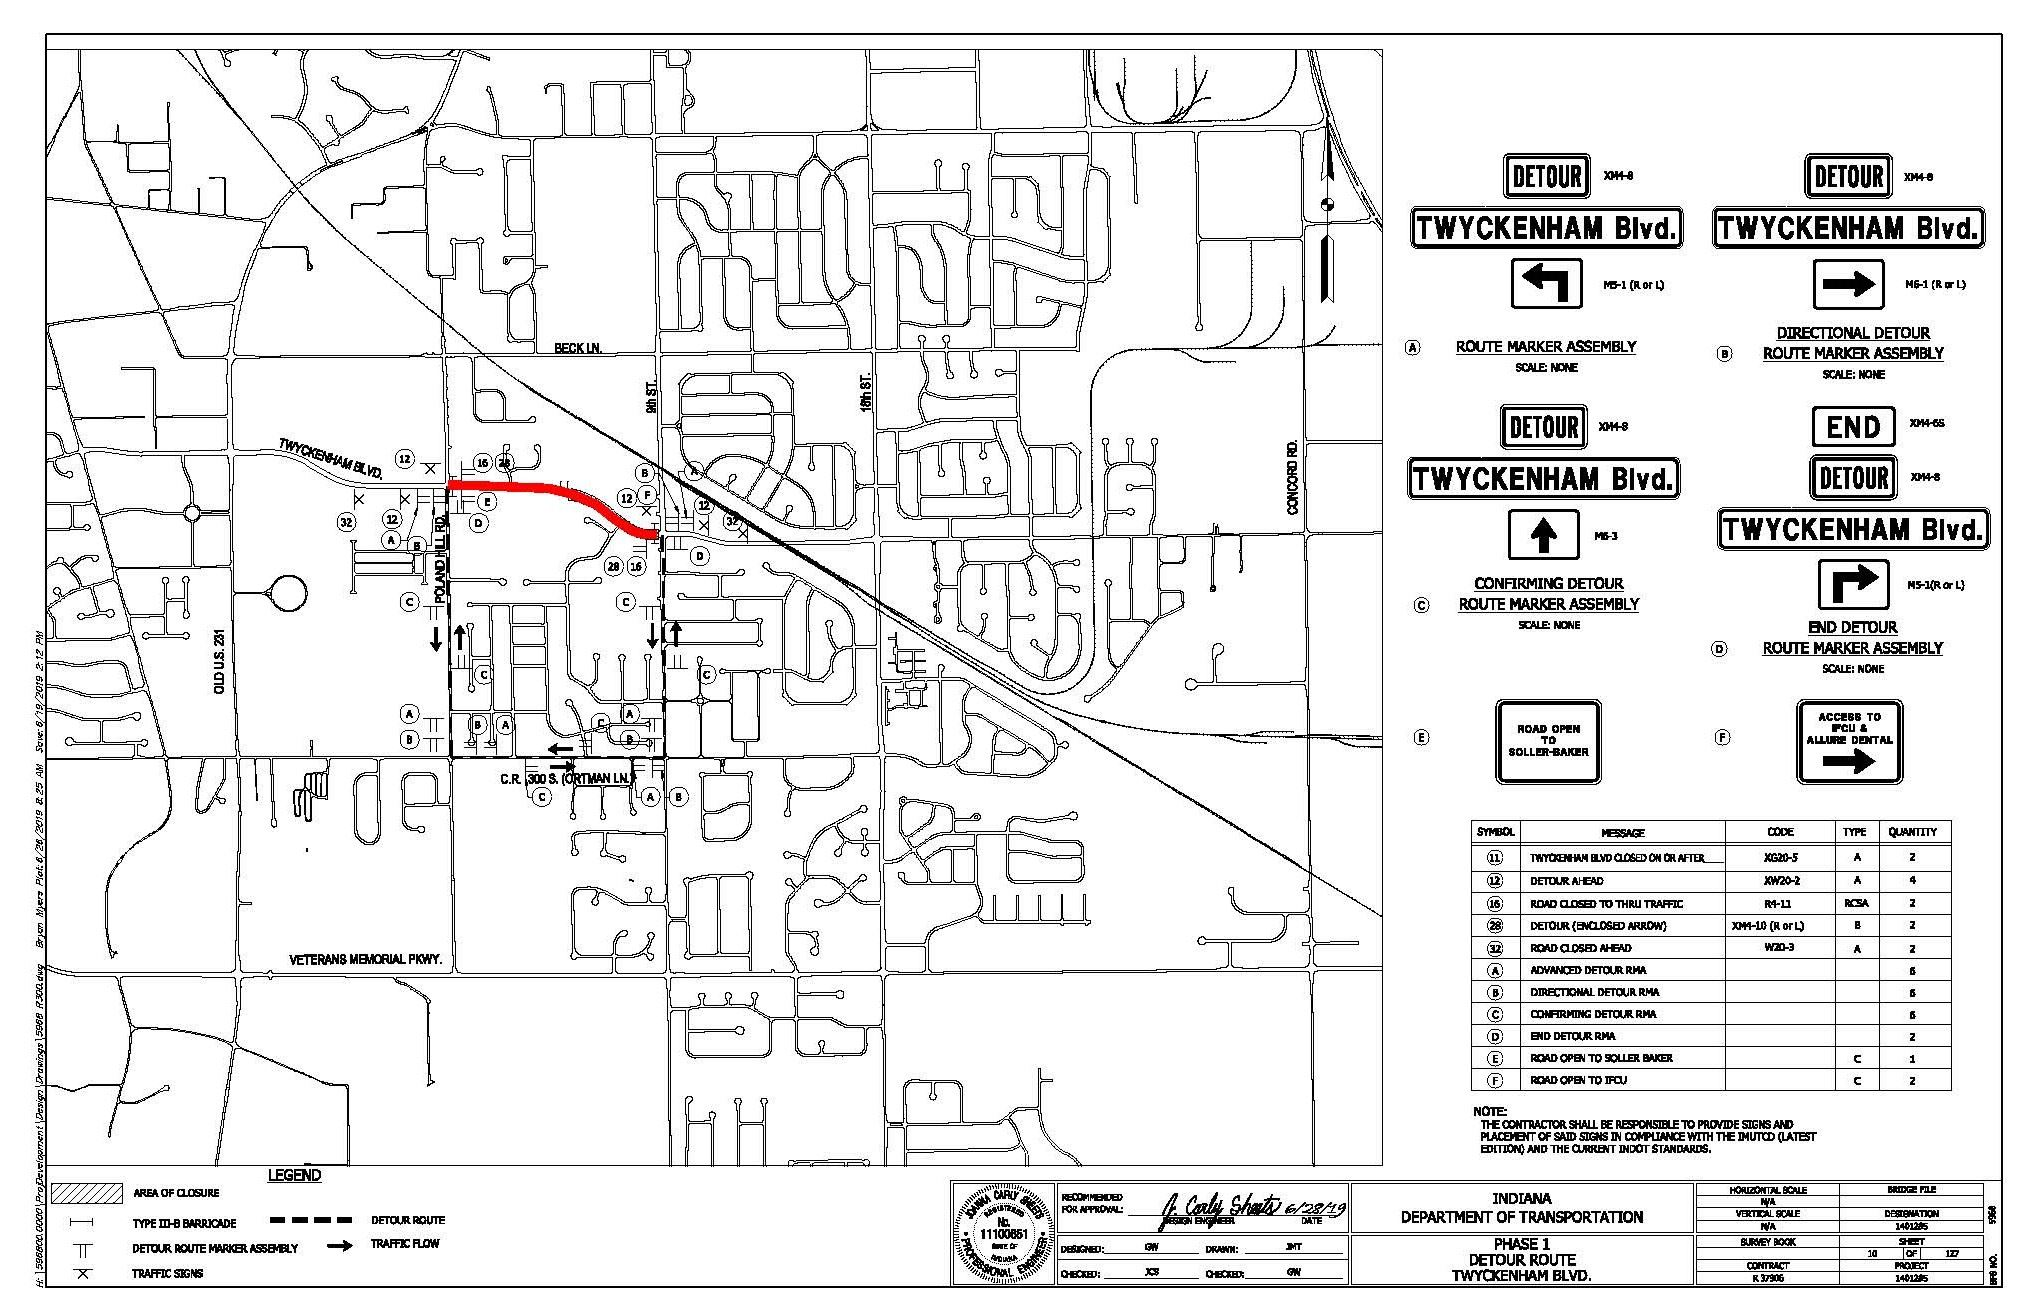 Twyckenham Blvd Detour Map